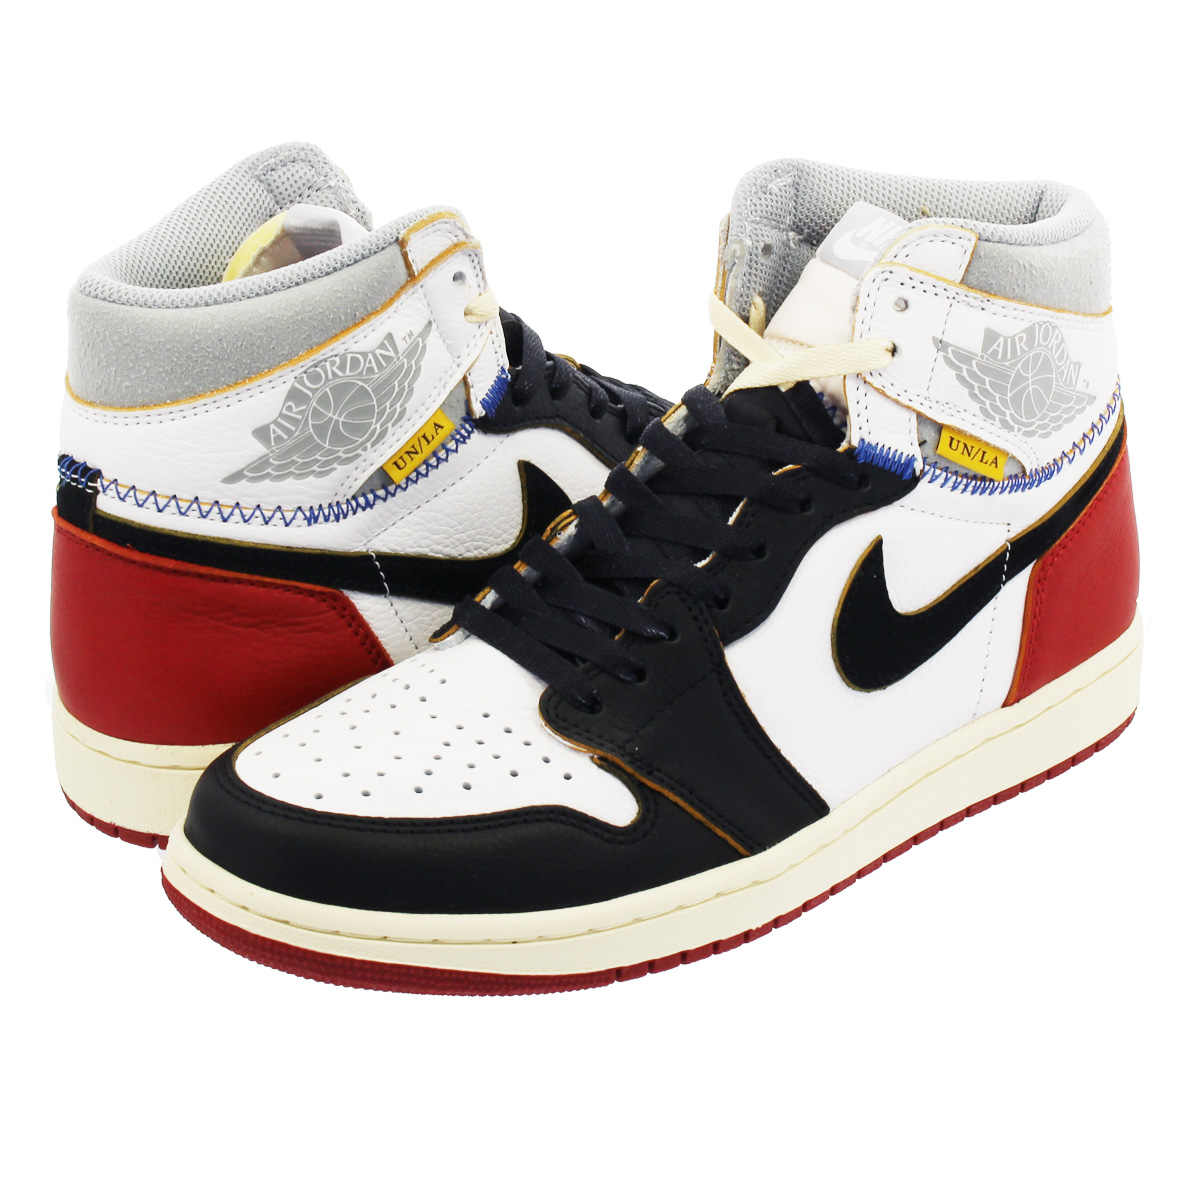 NIKE AIR JORDAN 1 RETRO HIGH OG NRG 【UNION】 ナイキ エア ジョーダン 1 レトロ ハイ OG NRG ユニオン WHITE/VARSITY RED/WOLF GREY/BLACK bv1300-106